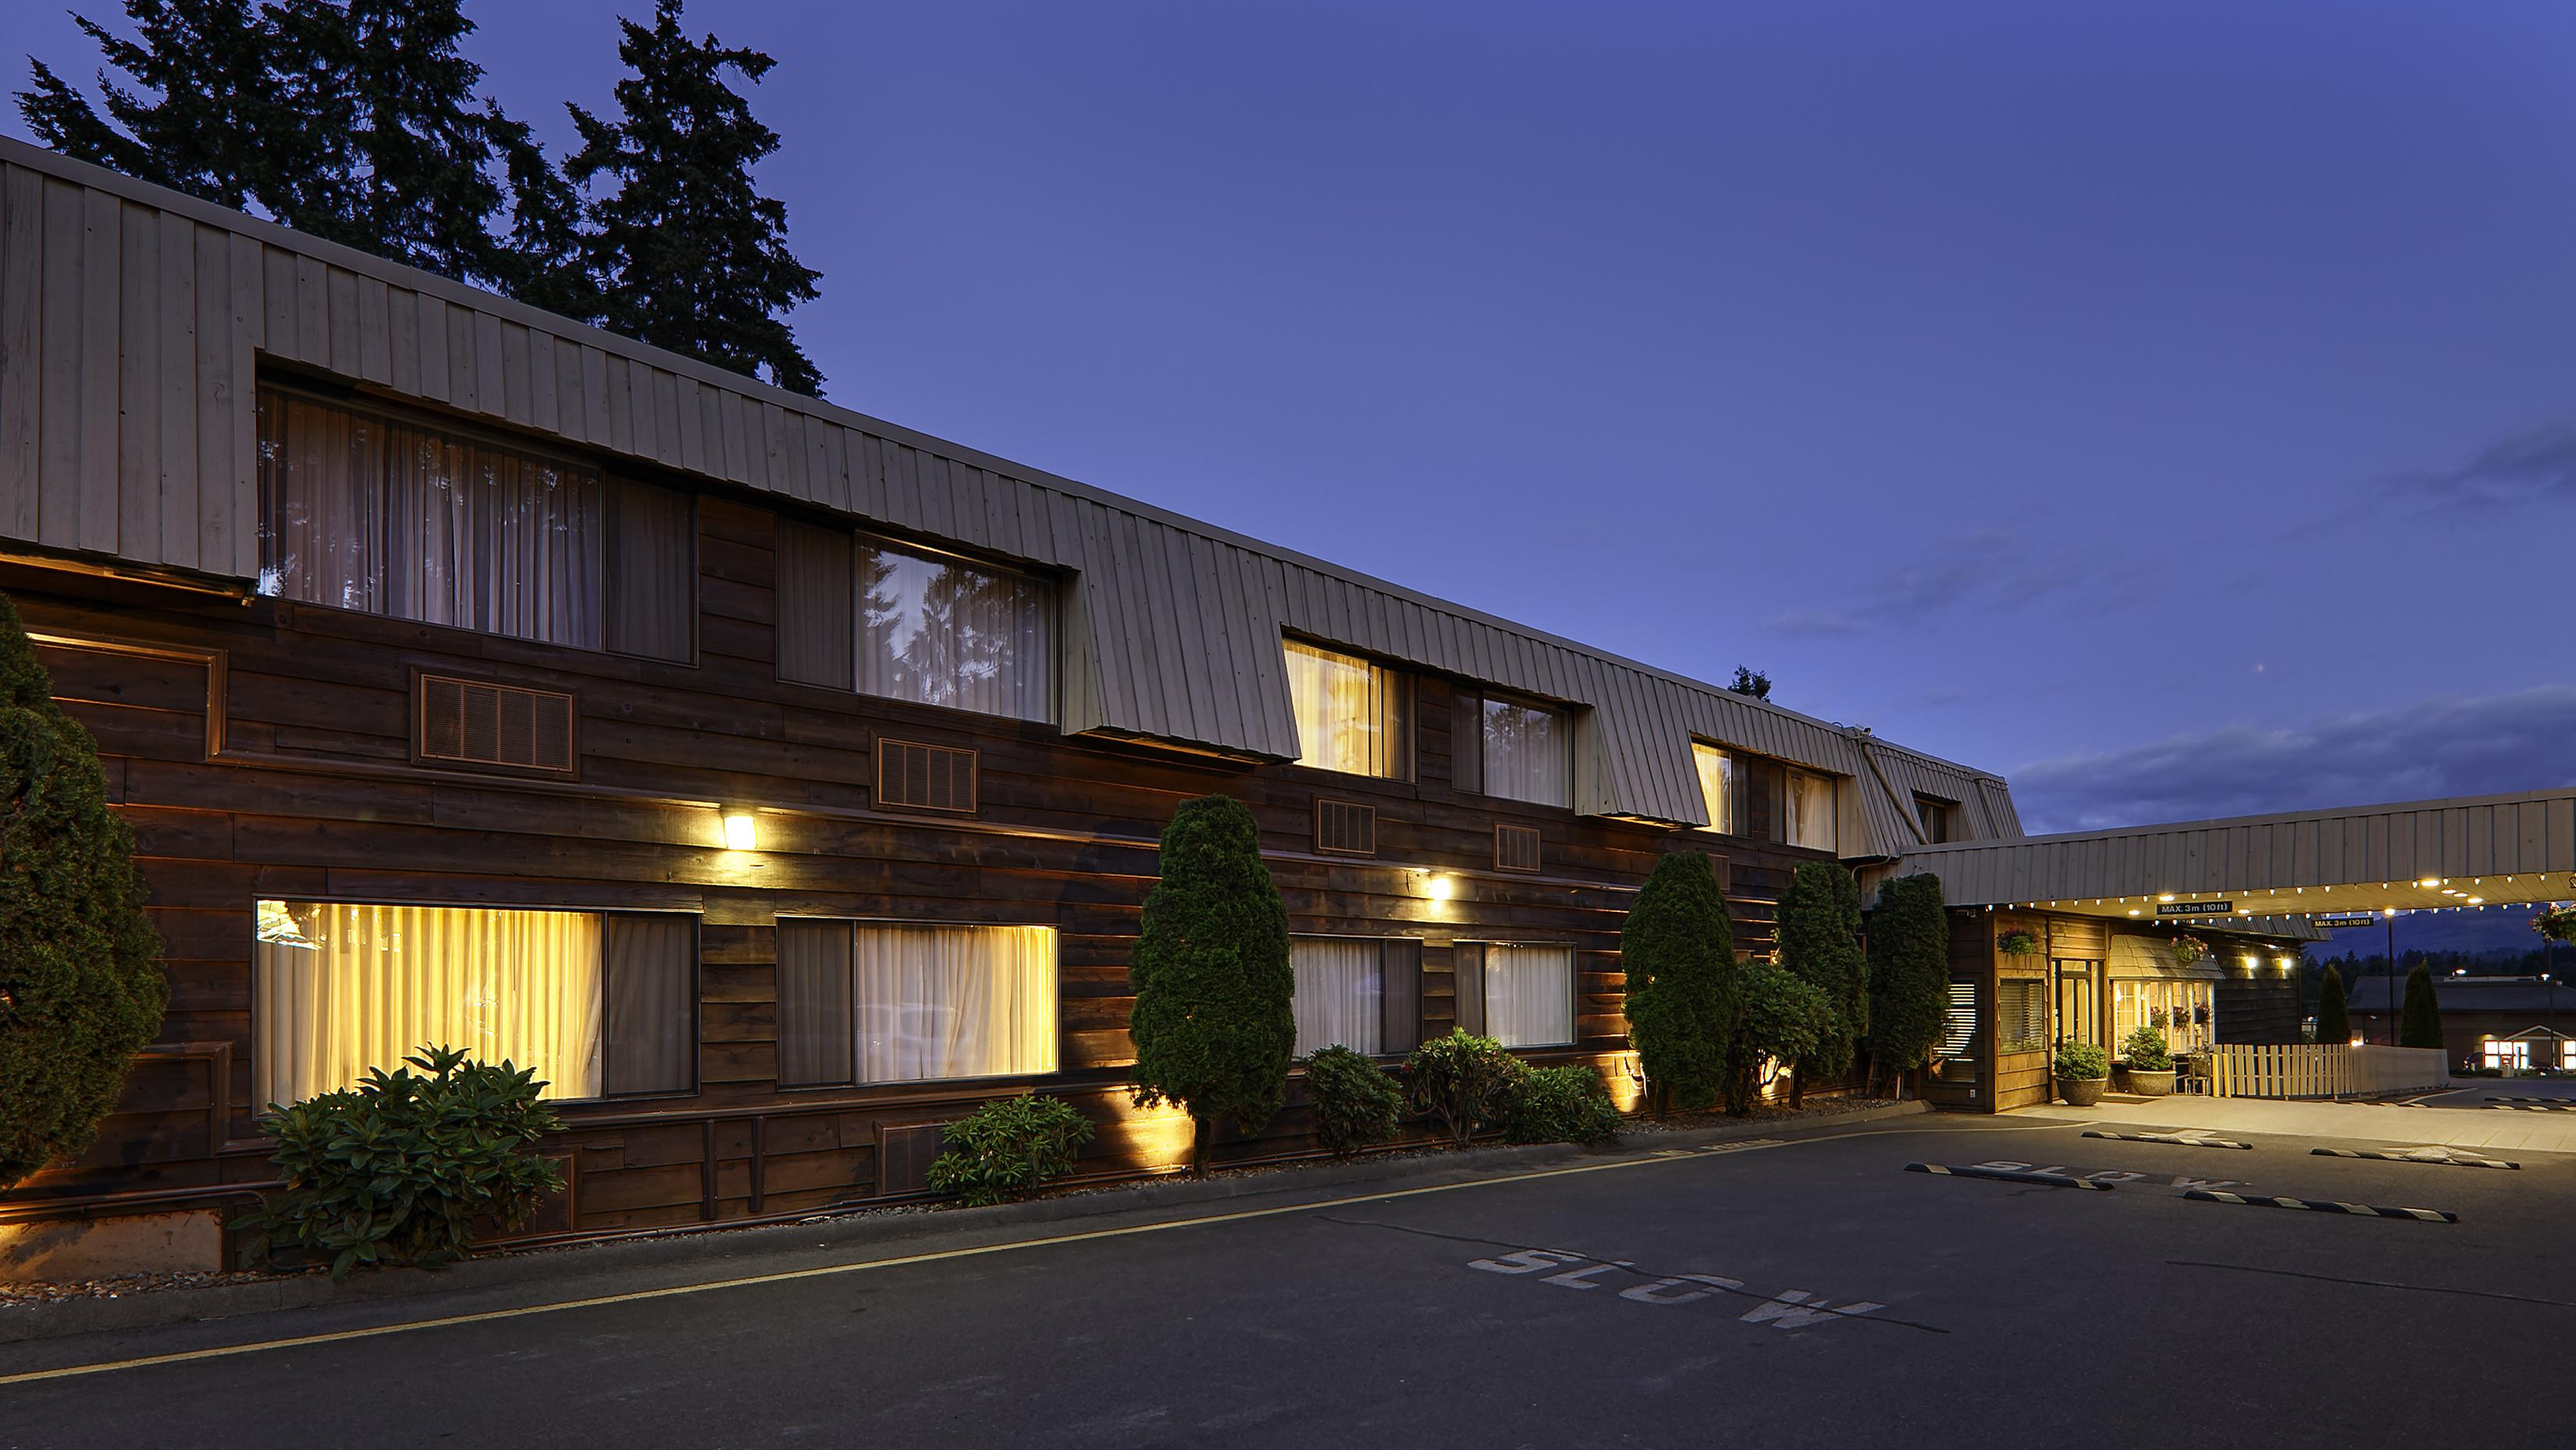 Best Western Cowichan Valley Inn in Duncan: Best Western® Cowichan Valley Inn